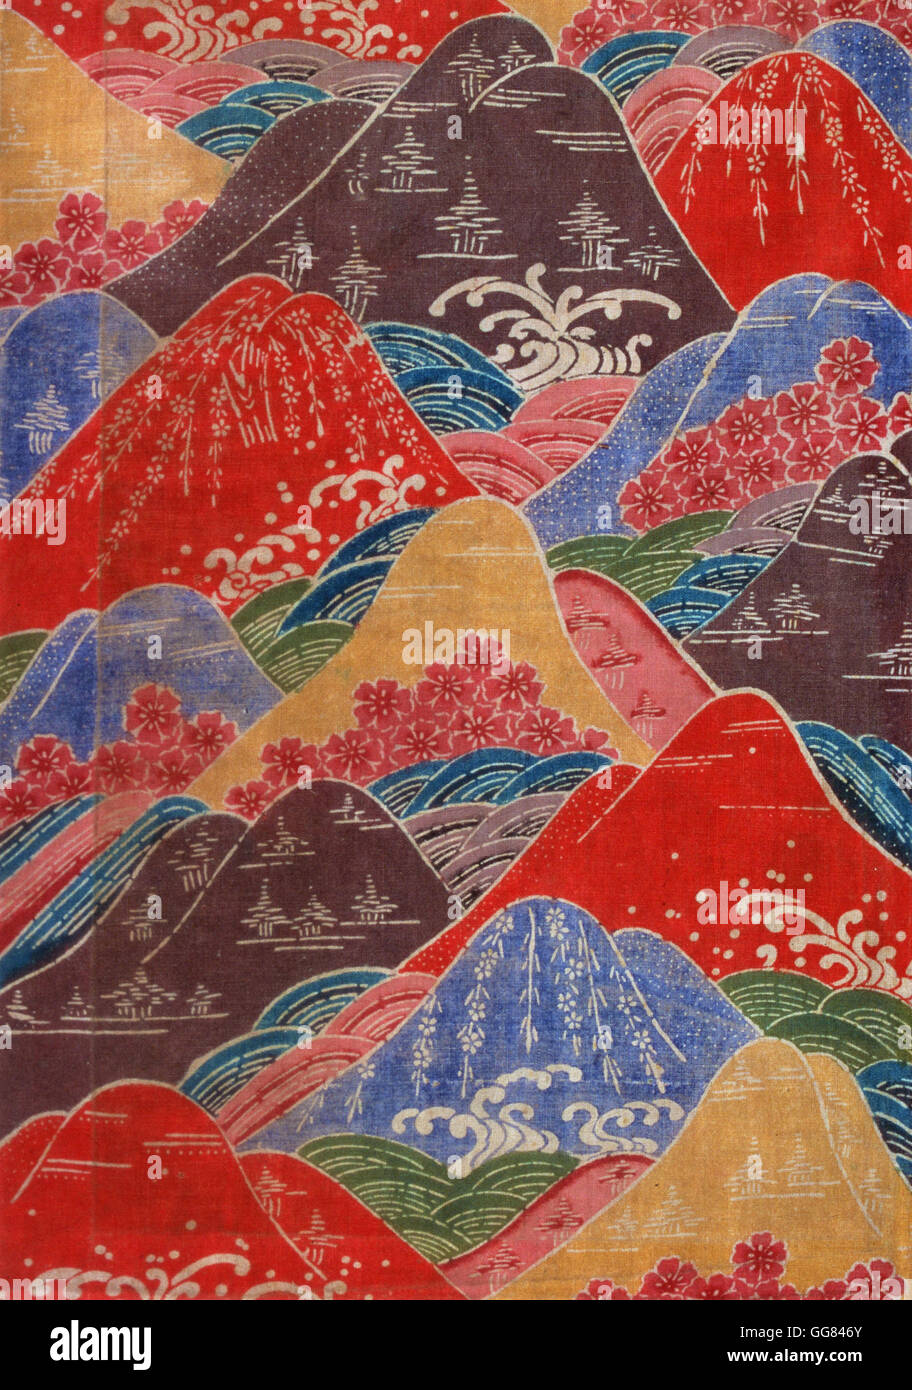 Bingata textile fragment- cherry blossoms, waves, mountains motifs - Stock Image